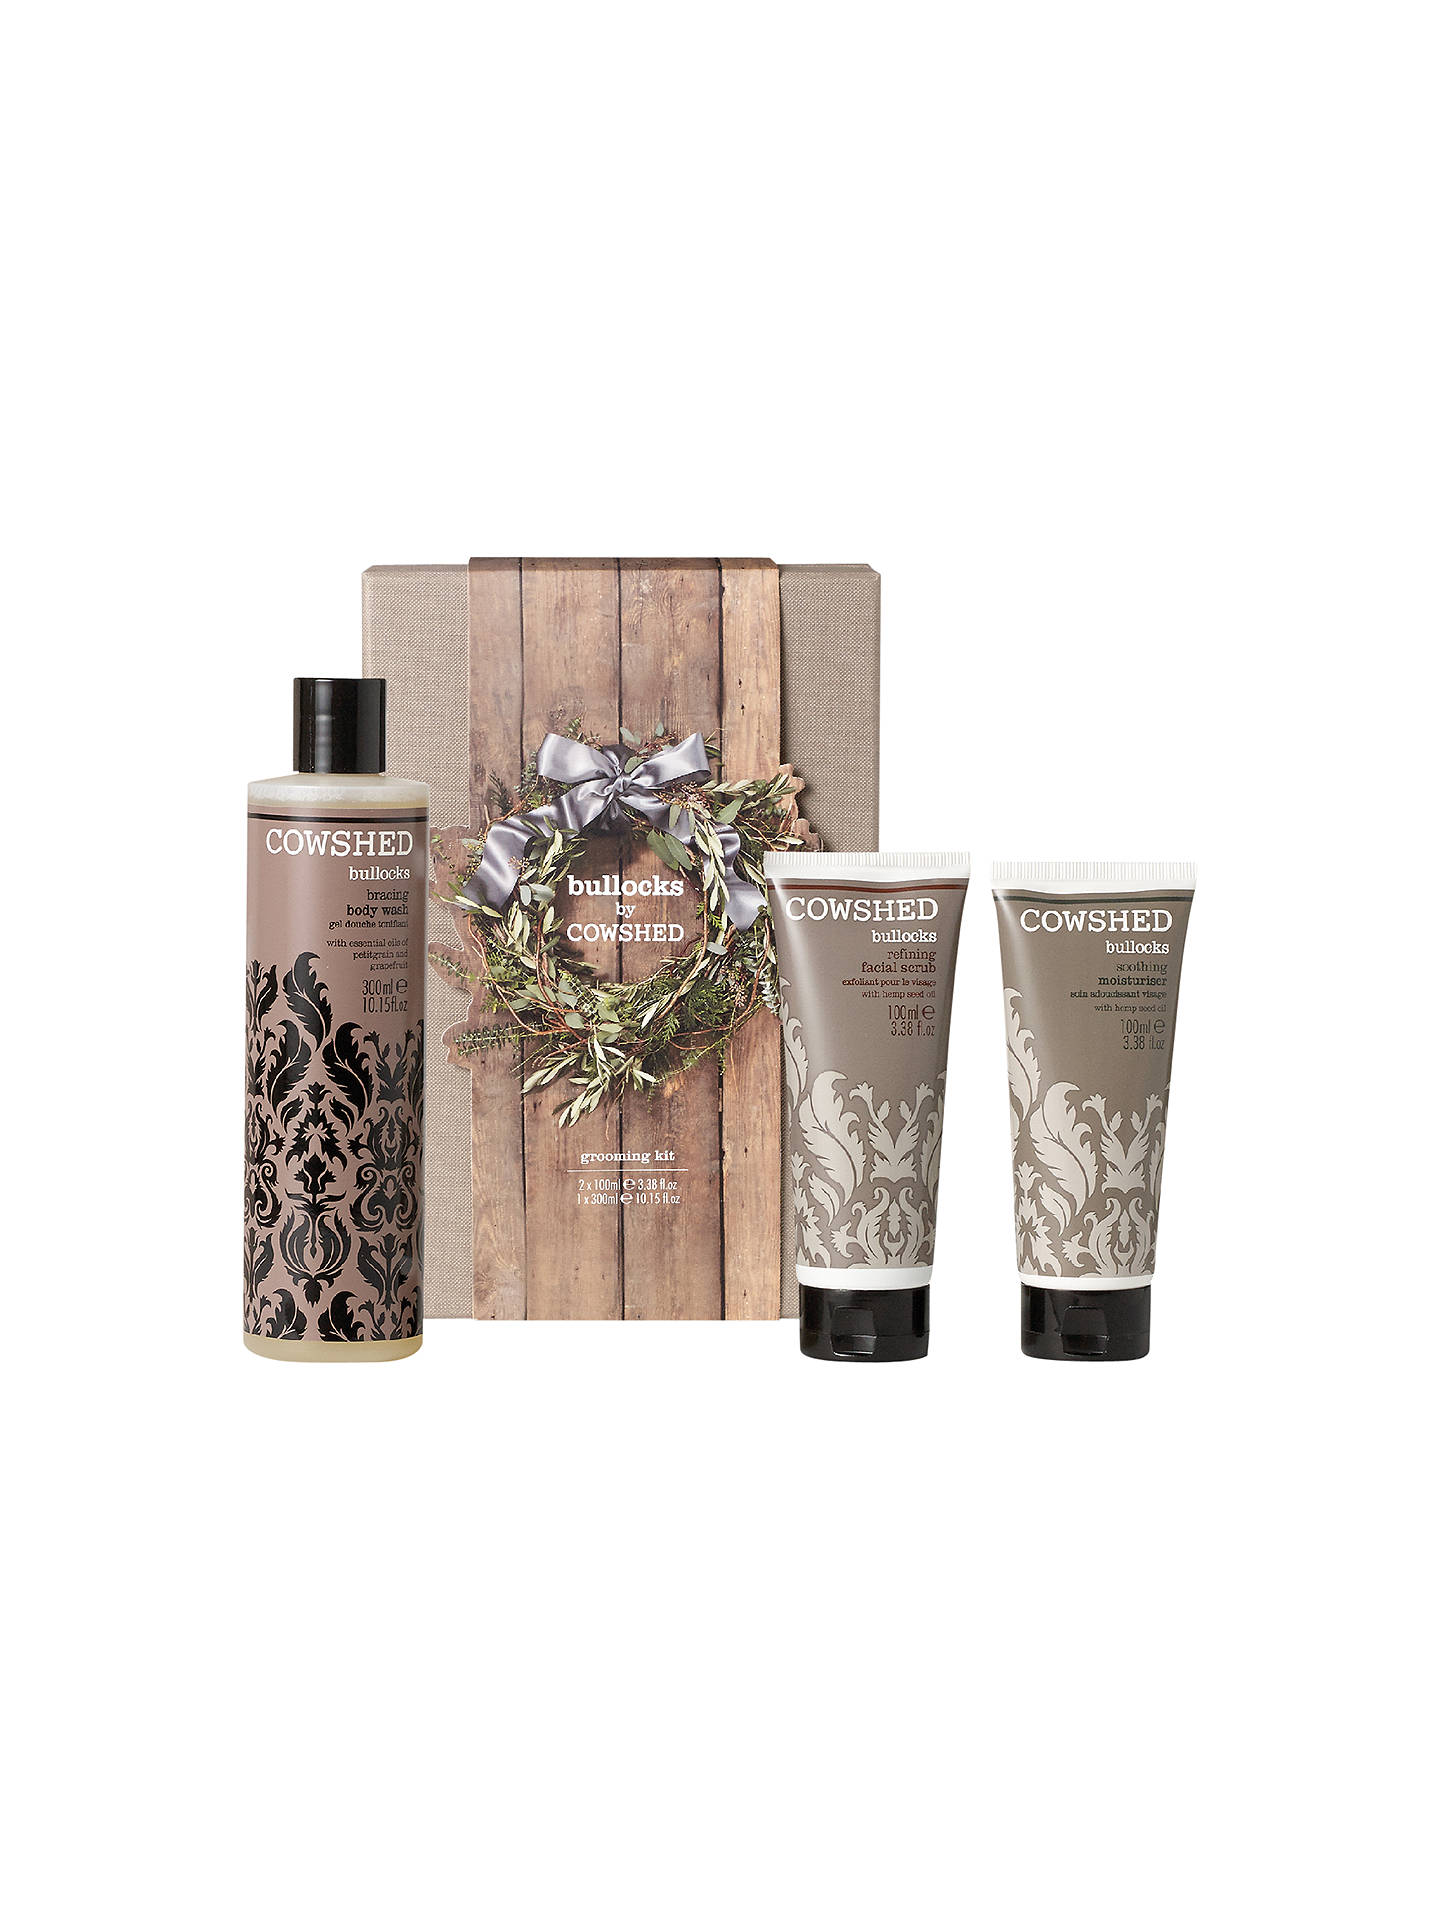 Buy Cowshed Bullocks Grooming Kit Online at johnlewis.com